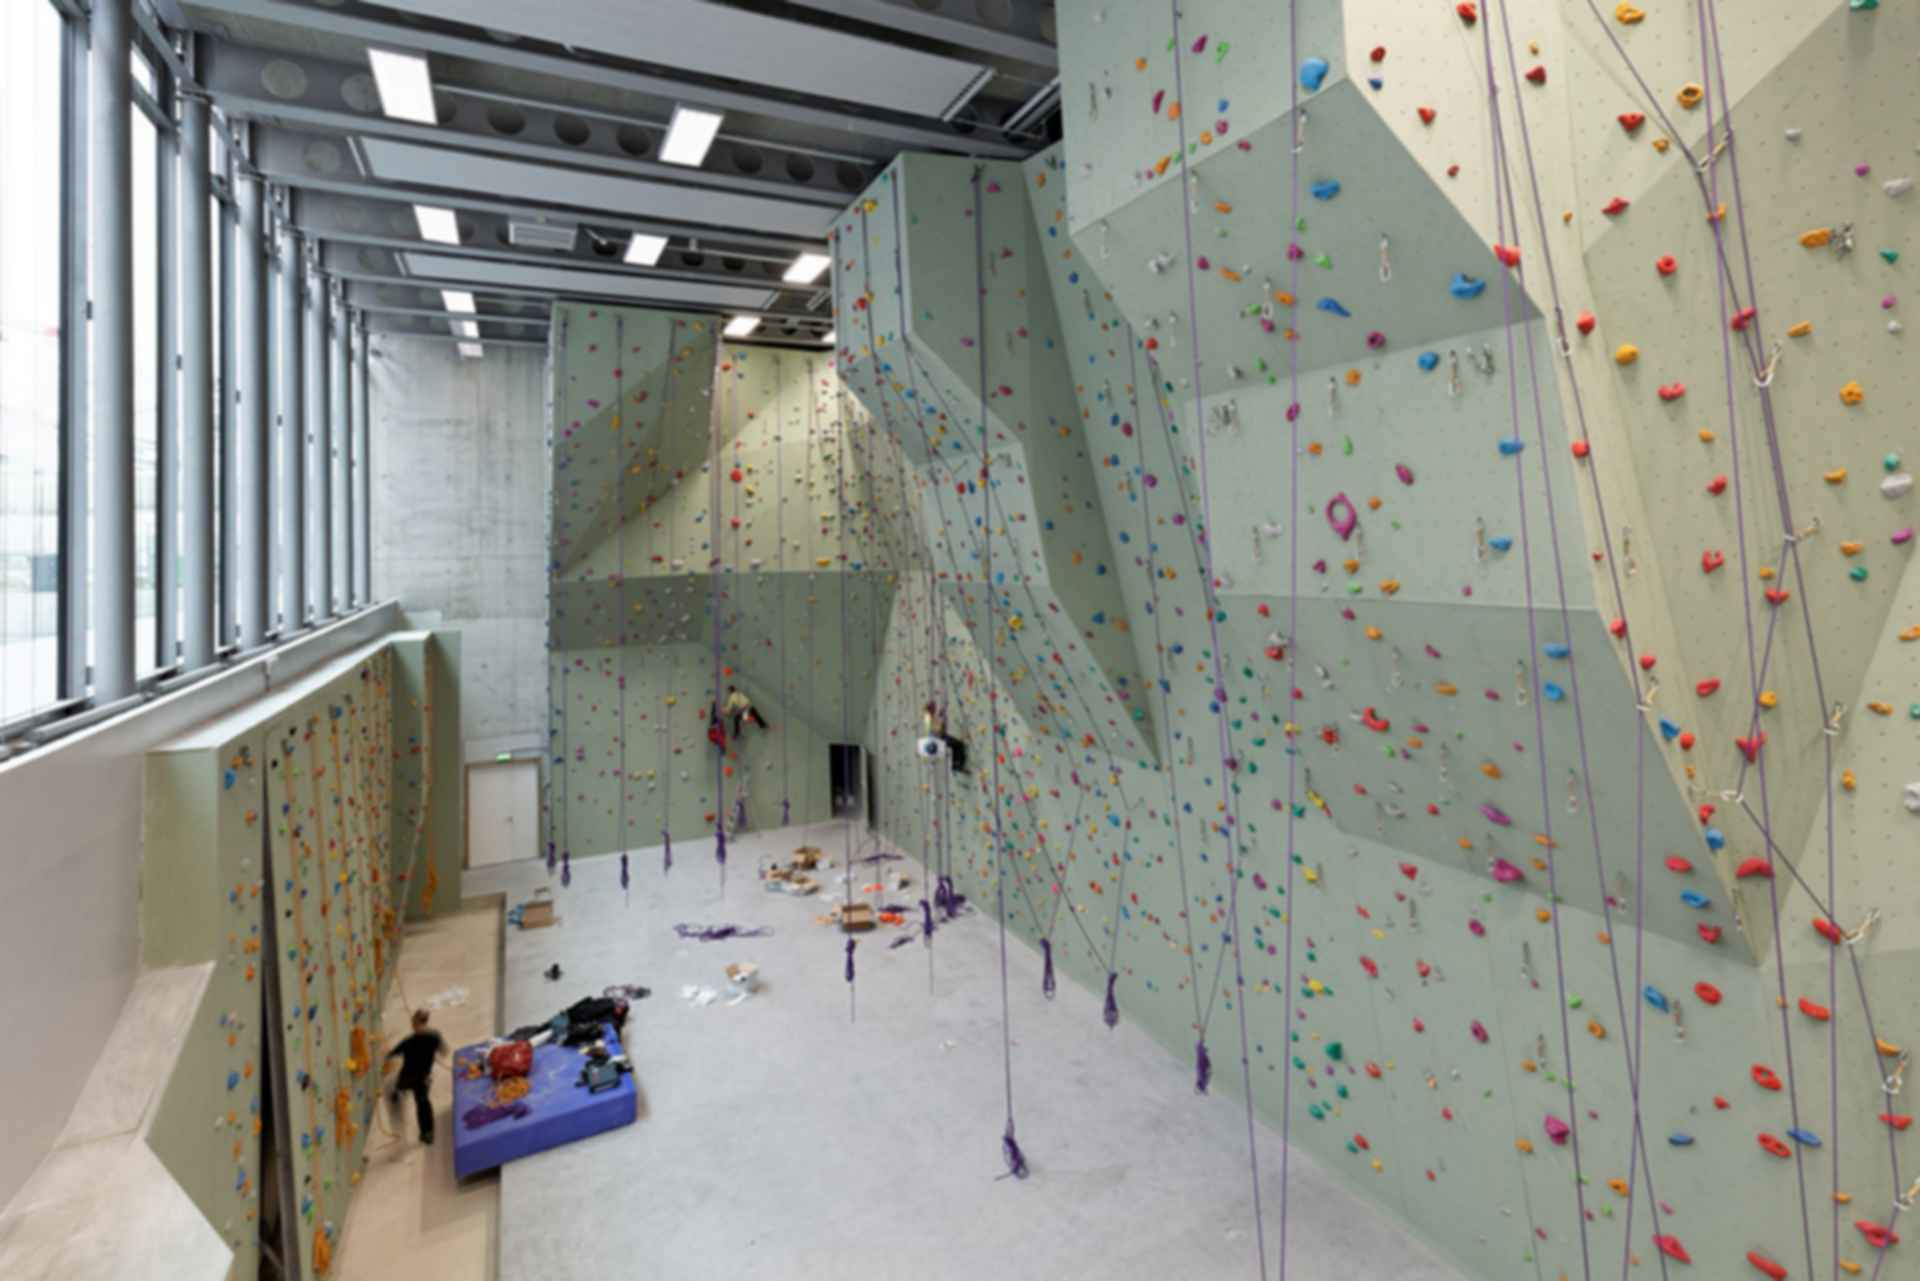 Sports Center Jules Ladoumegue - Interior/Rock Climbing Wall